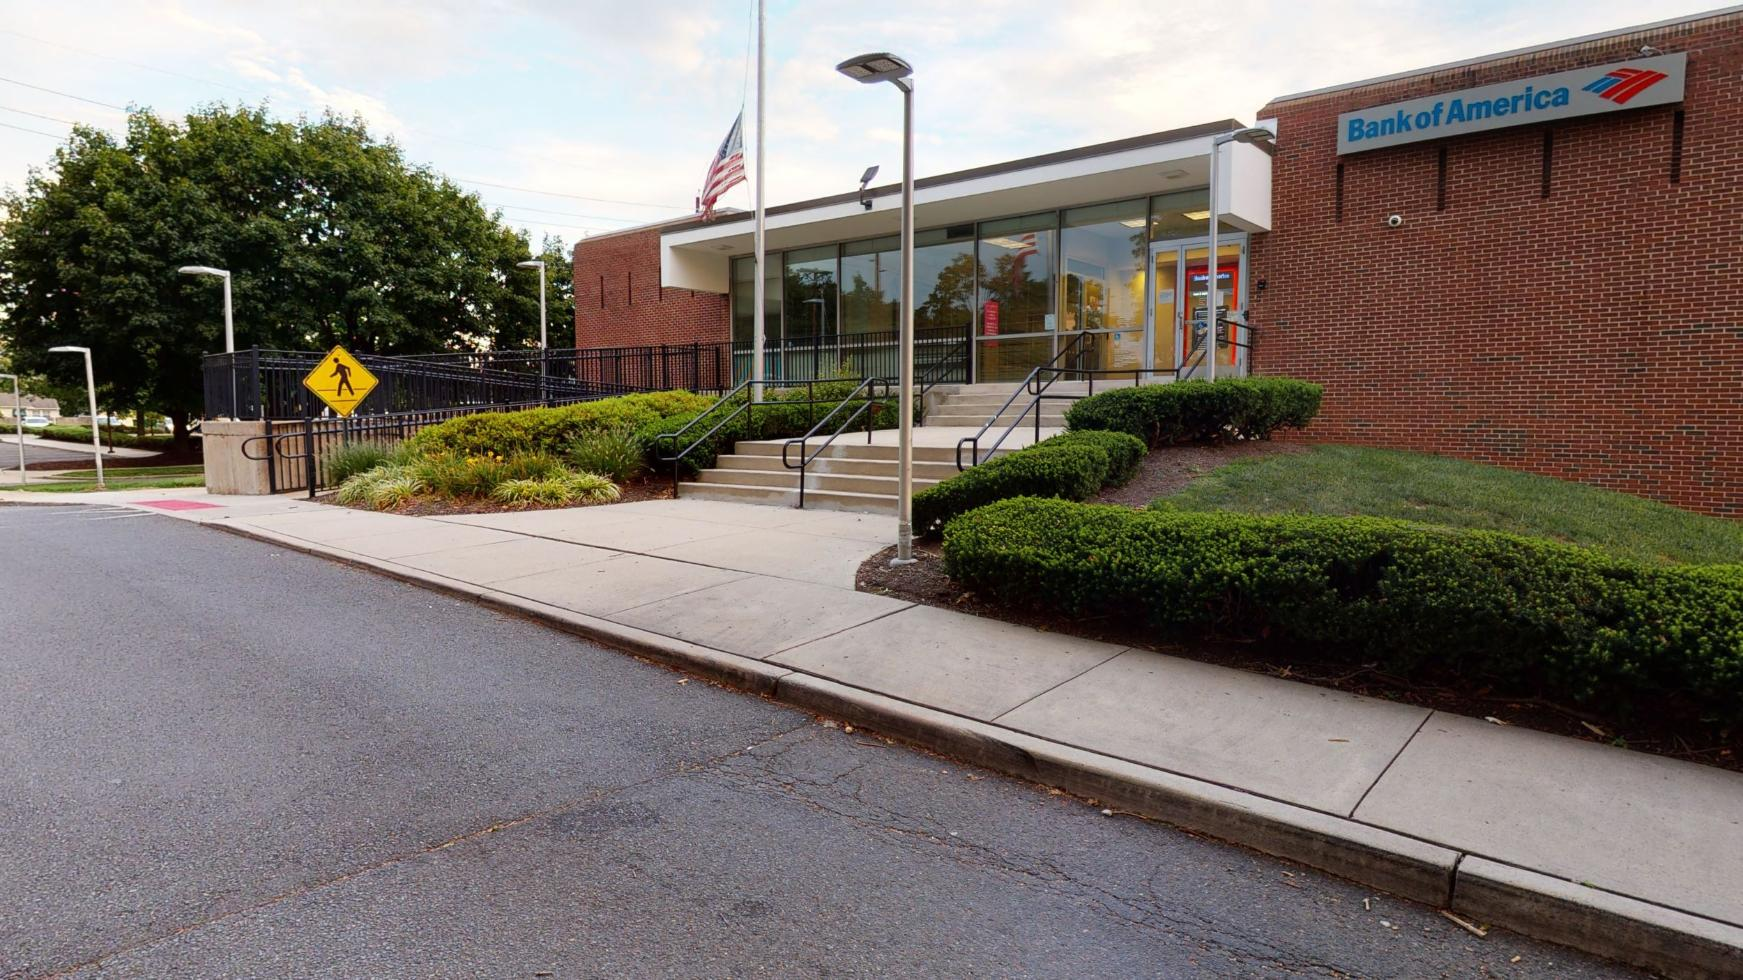 Bank of America financial center with drive-thru ATM   450 Route 33, Mercerville, NJ 08619